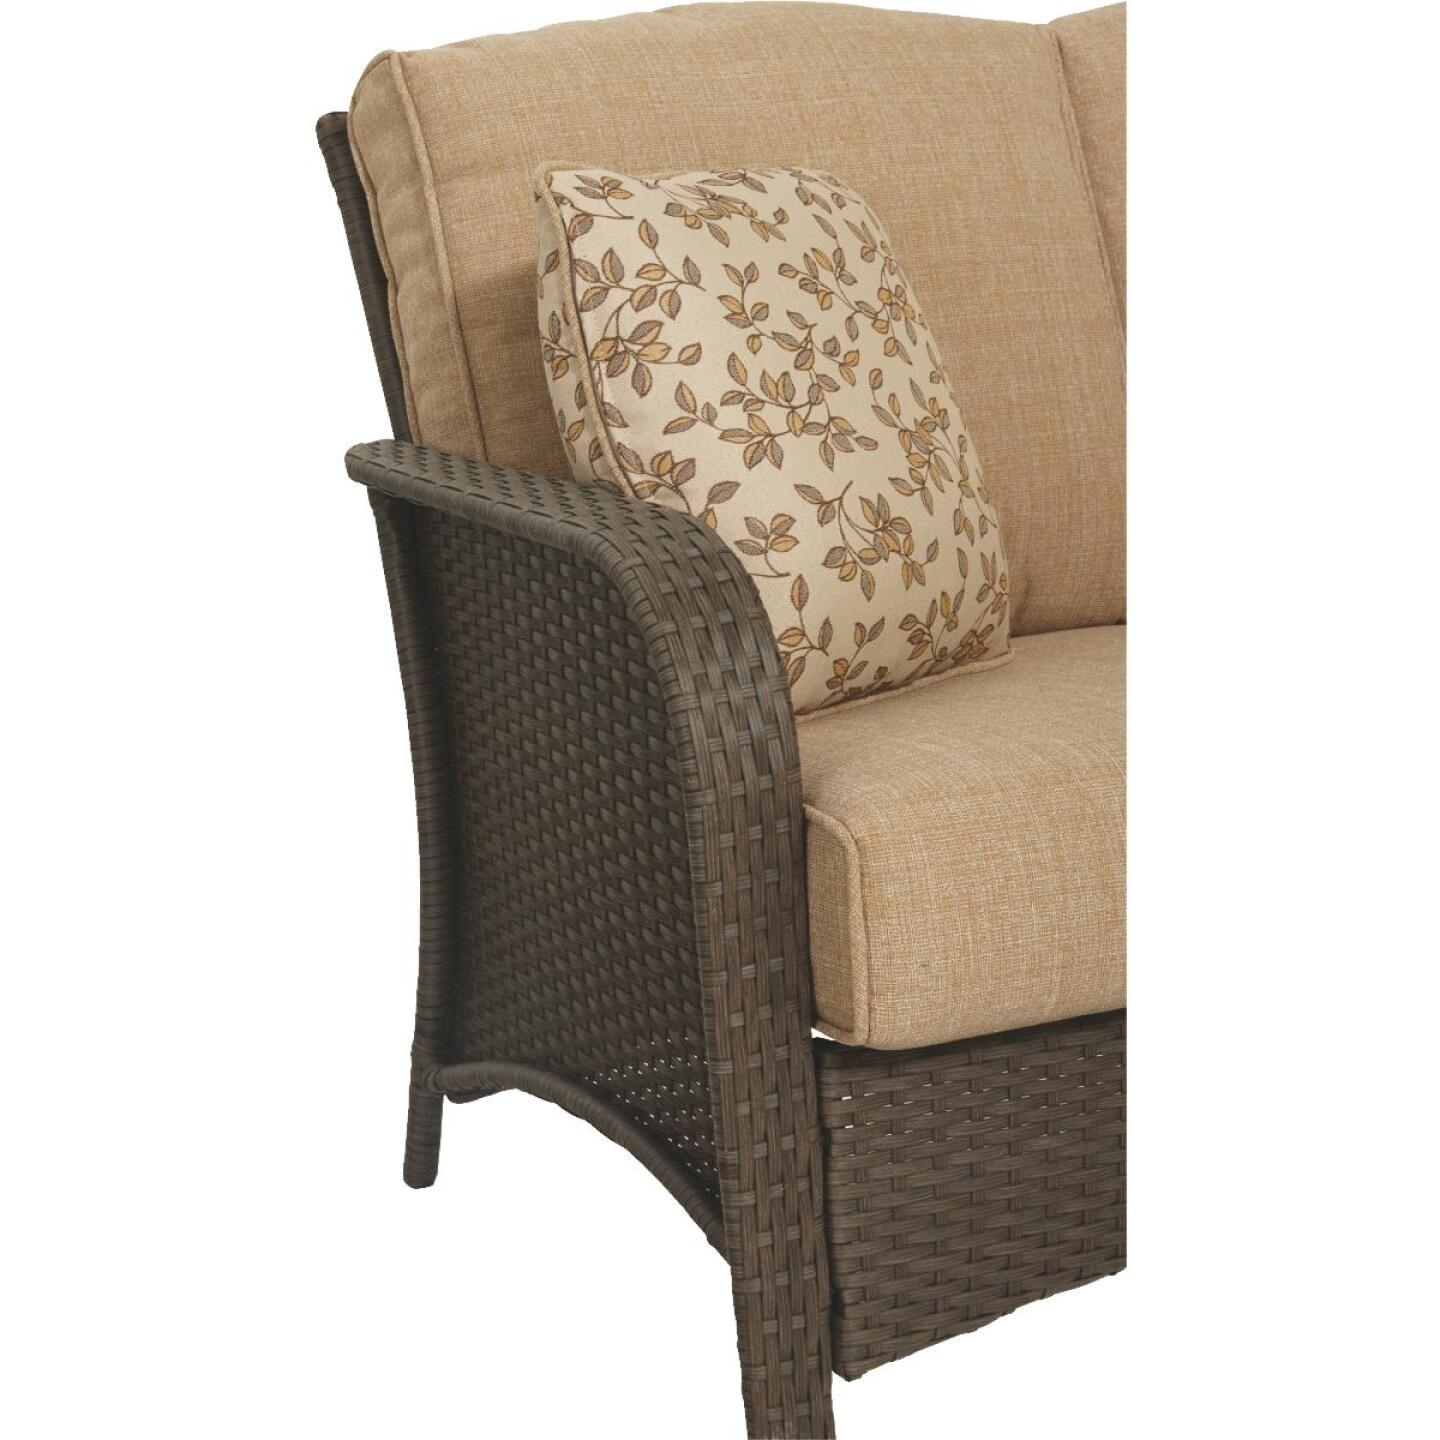 Pacific Casual Tiara Garden 2-Person Love Seat with Coffee Table Image 7